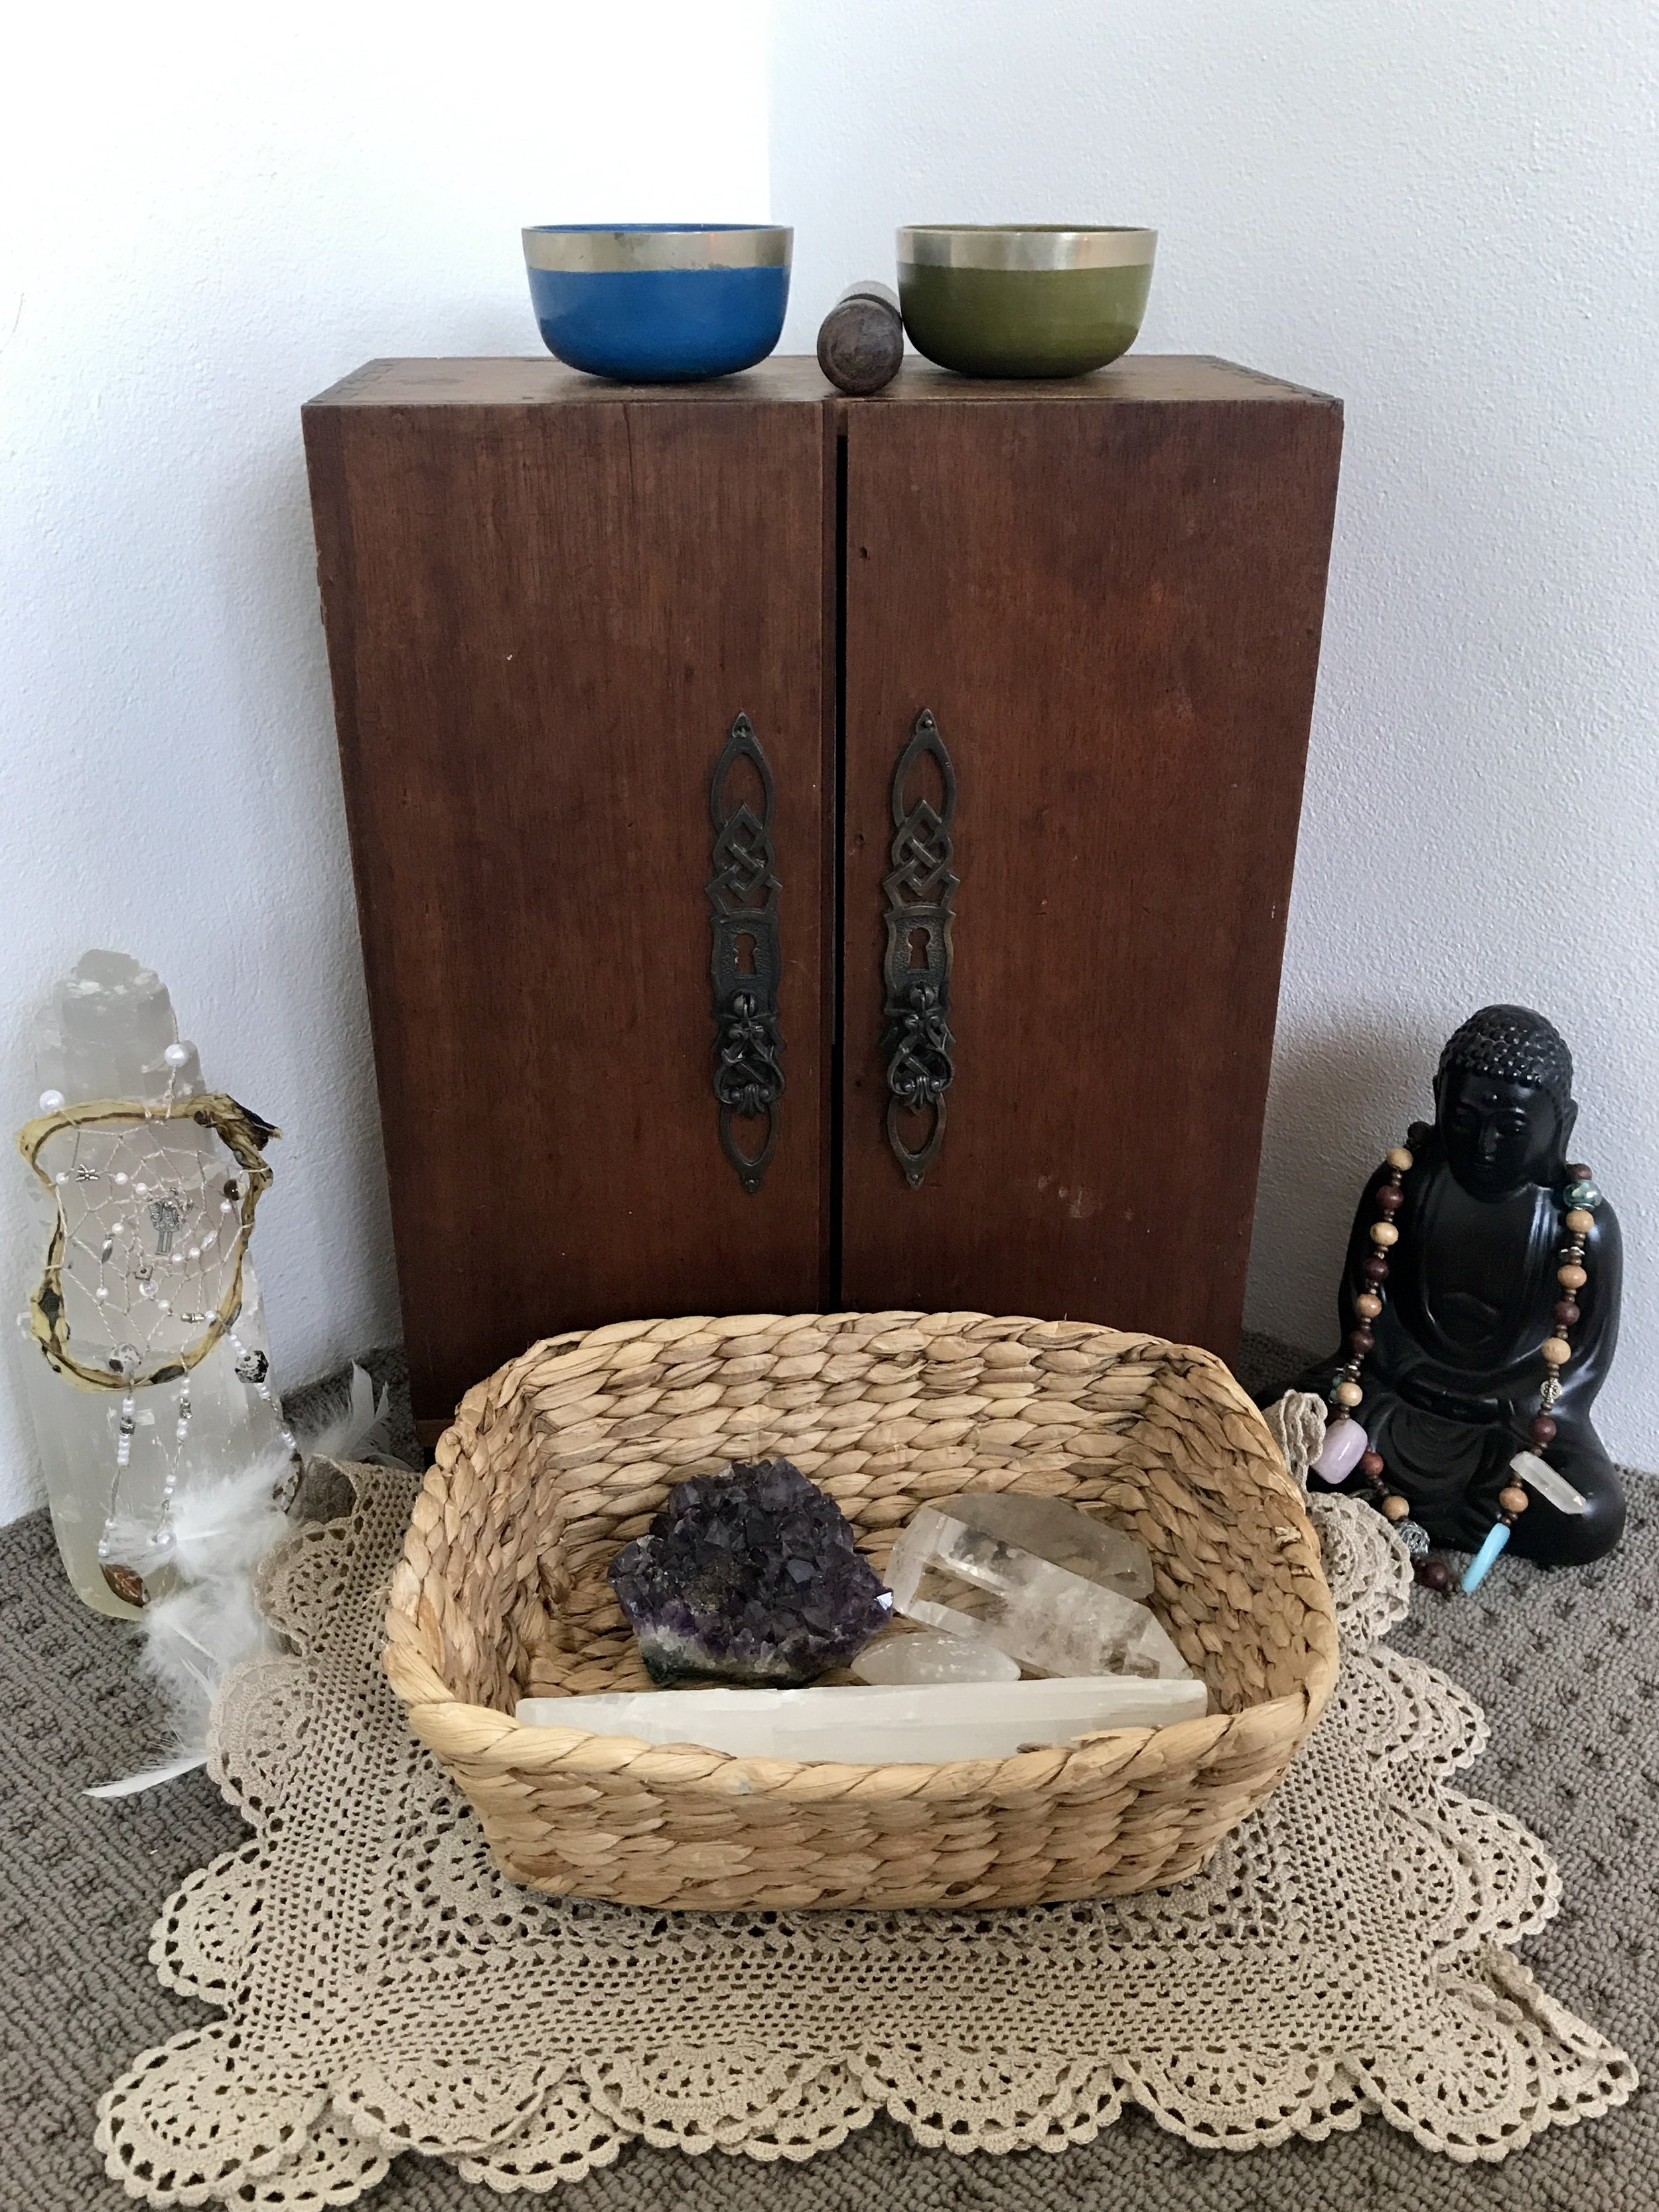 Our Buddha on the right, wearing the Birthing Necklace my soul sisters made for me at my Blessingway - and our Umbilical Chord Dreamcatcher hanging on our Selenite Crystal on the left.